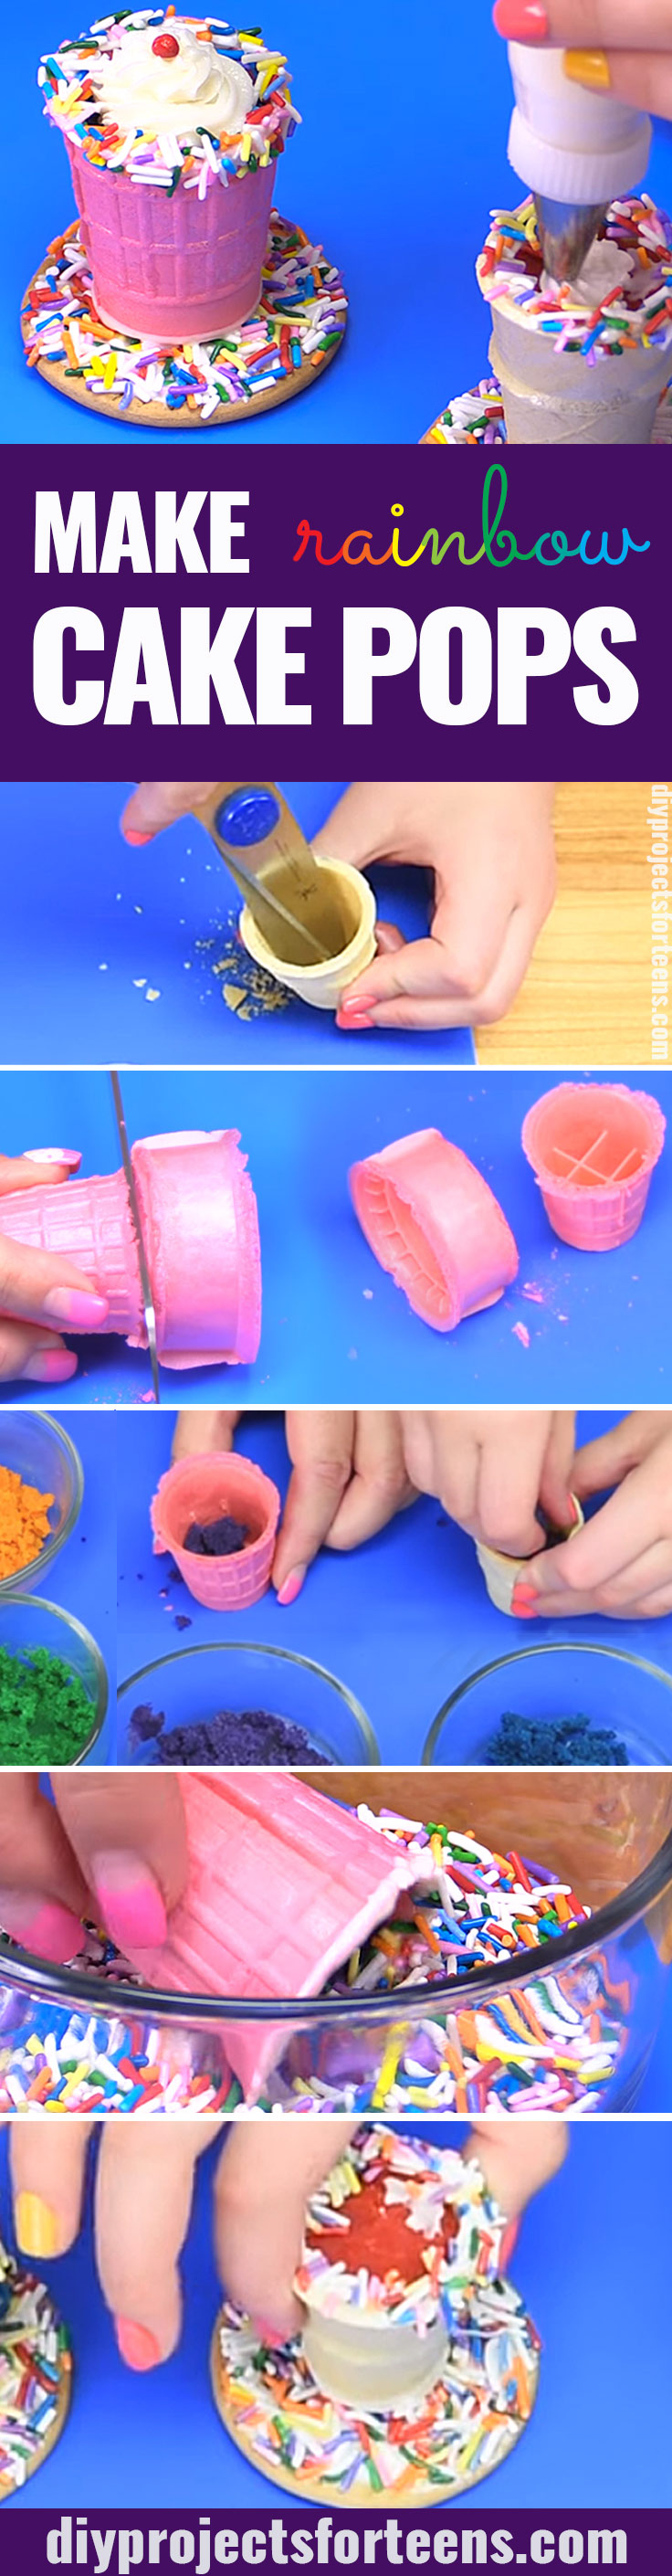 Youtubetutorial On How To Make Cake Pops